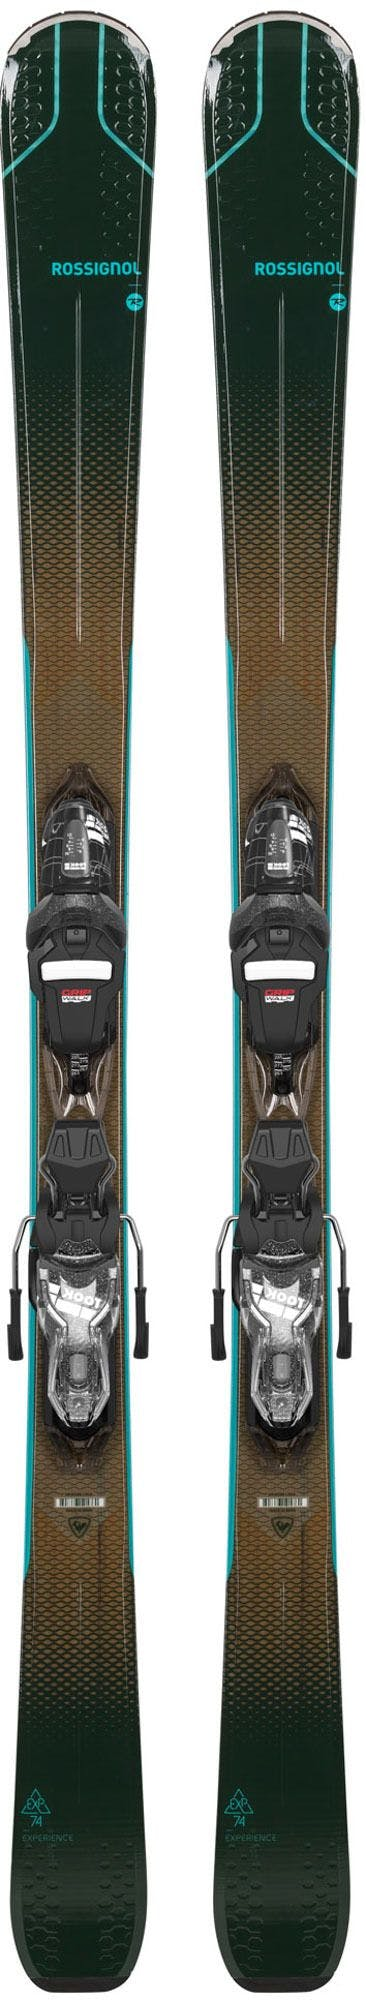 Rossignol Experience 74 Skis with Xpress Women's 10 Gw Bindings